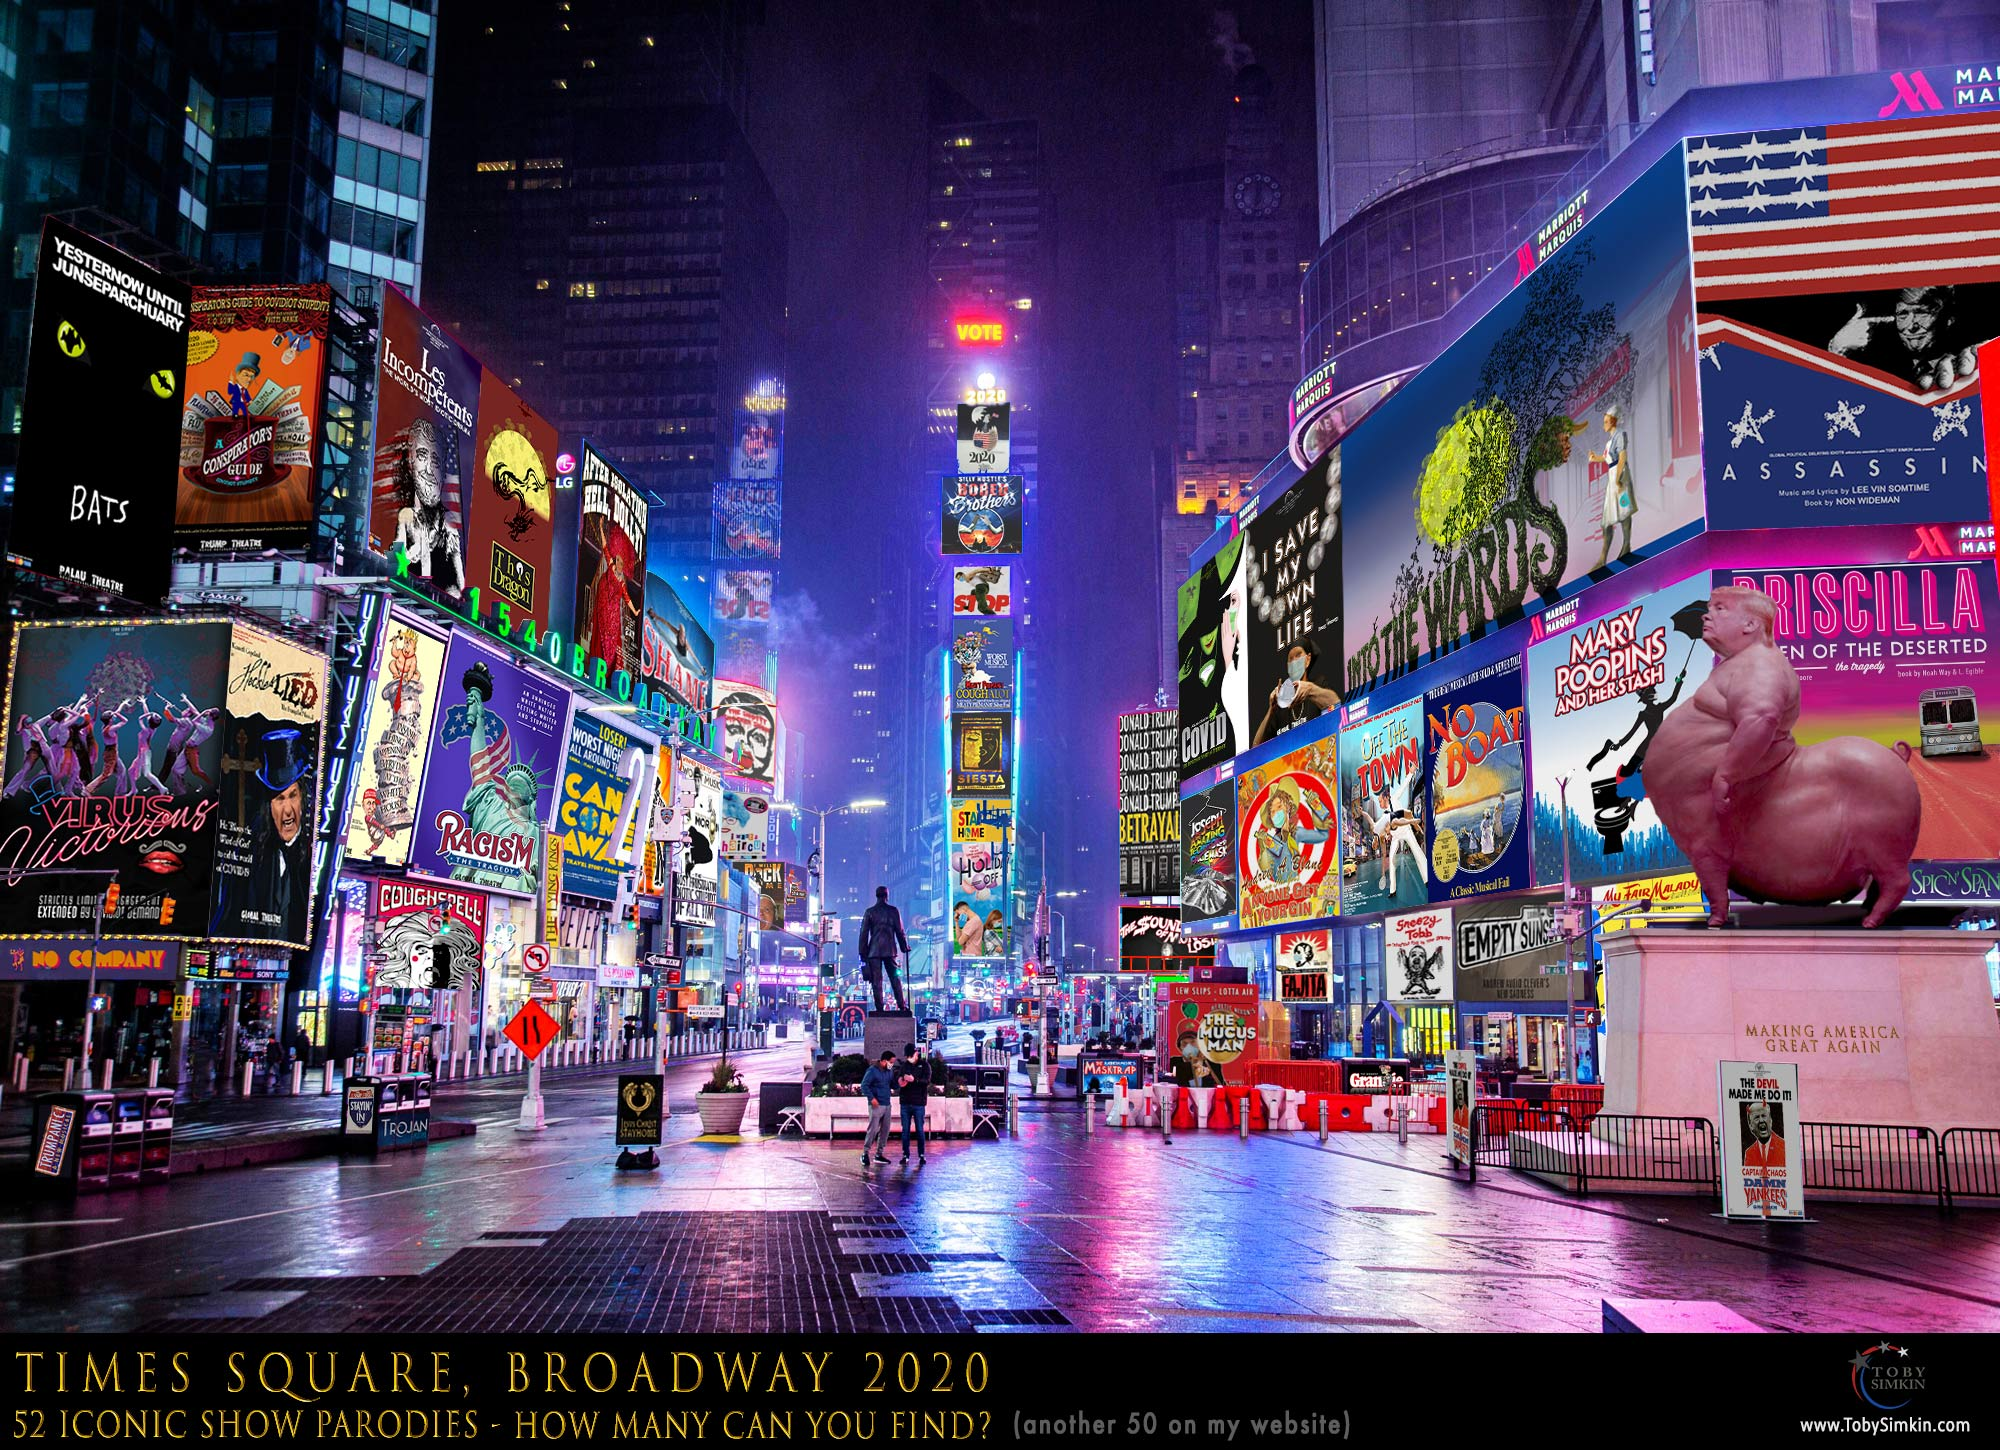 Broadway Billboards in 2020 Times Square VOTE Manhattan, New York City